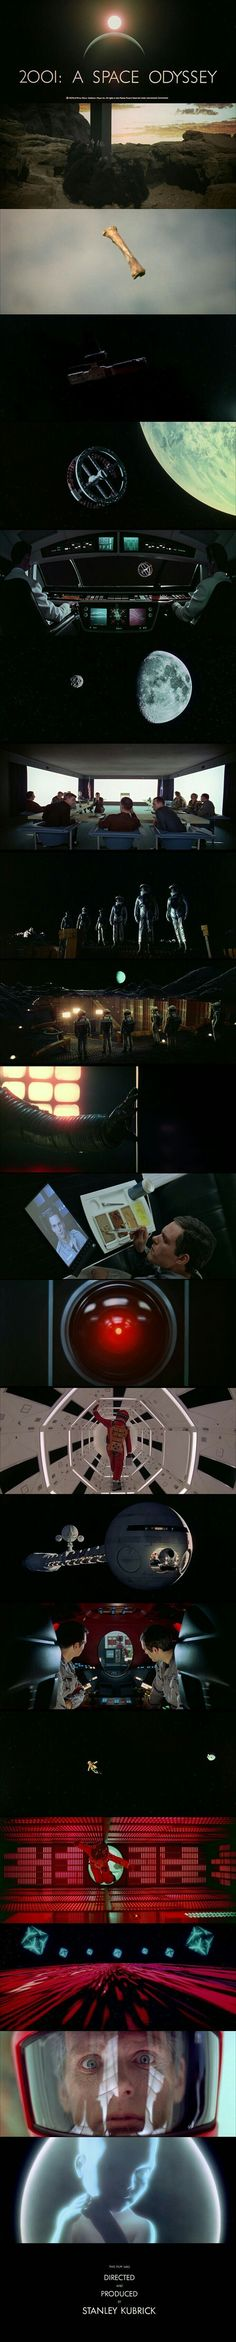 2001:A Space Odyssey (1968) Written and Directed by Stanley Kubrick.